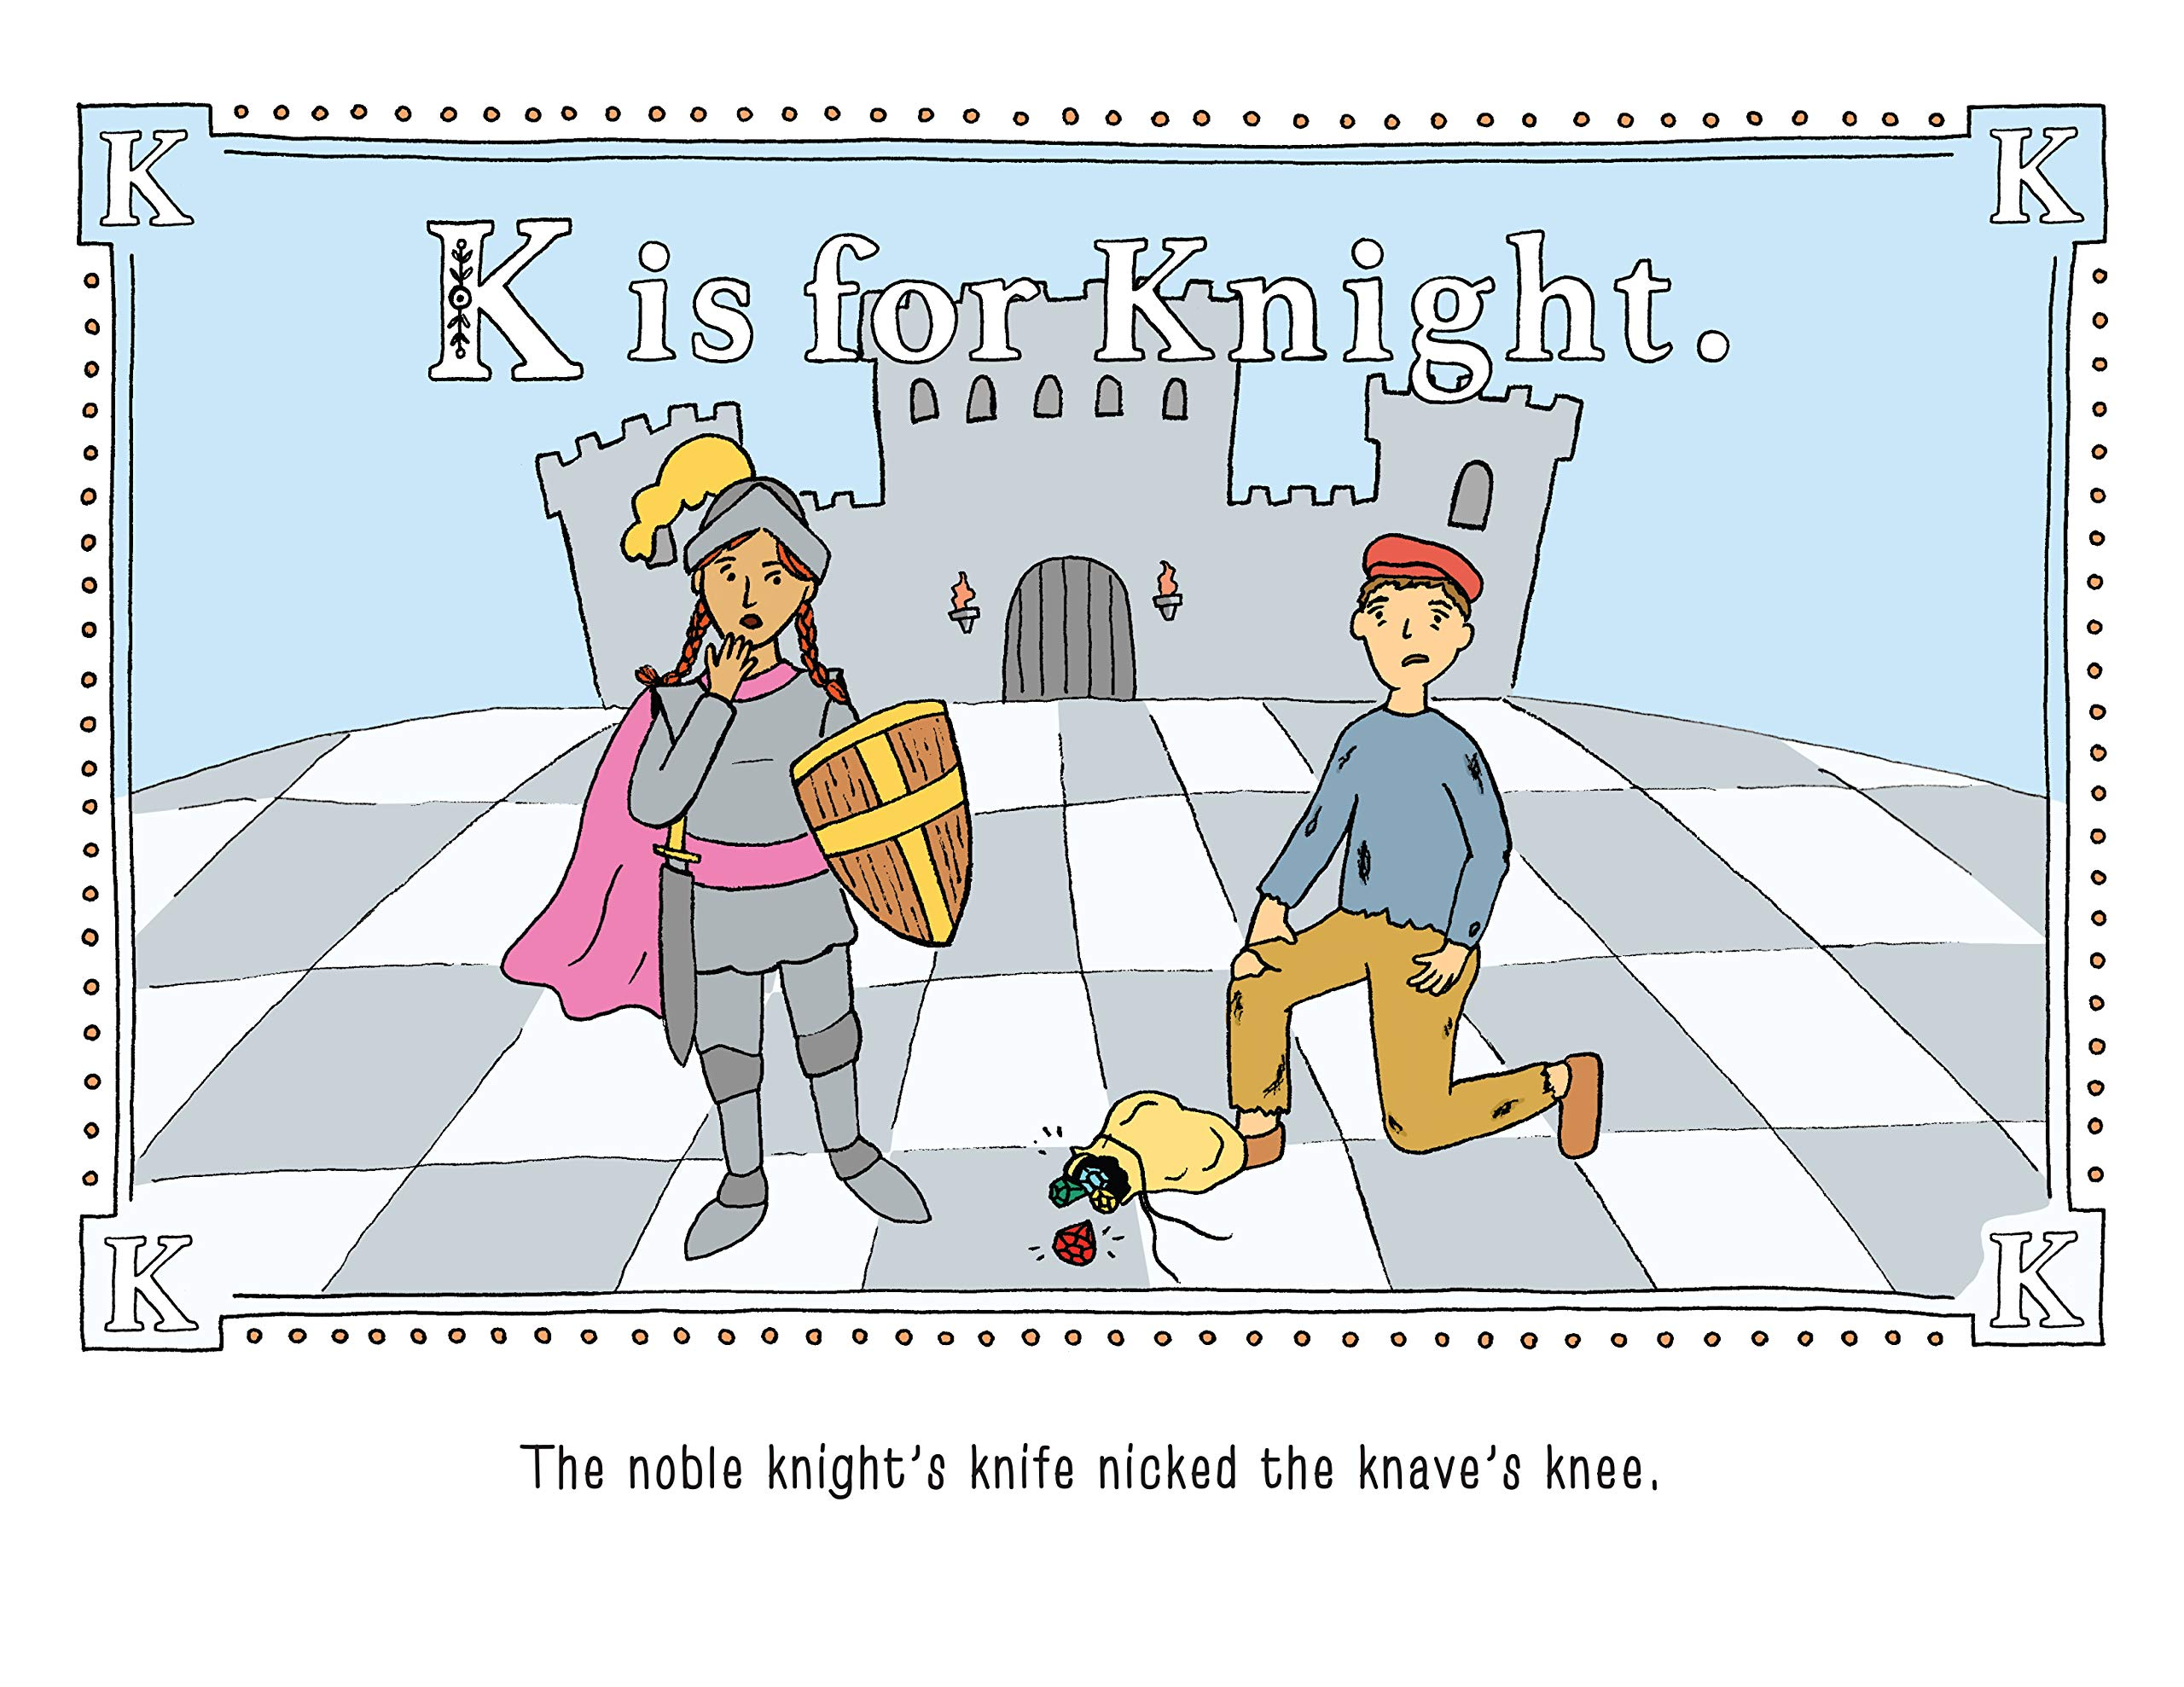 K is for Knight page